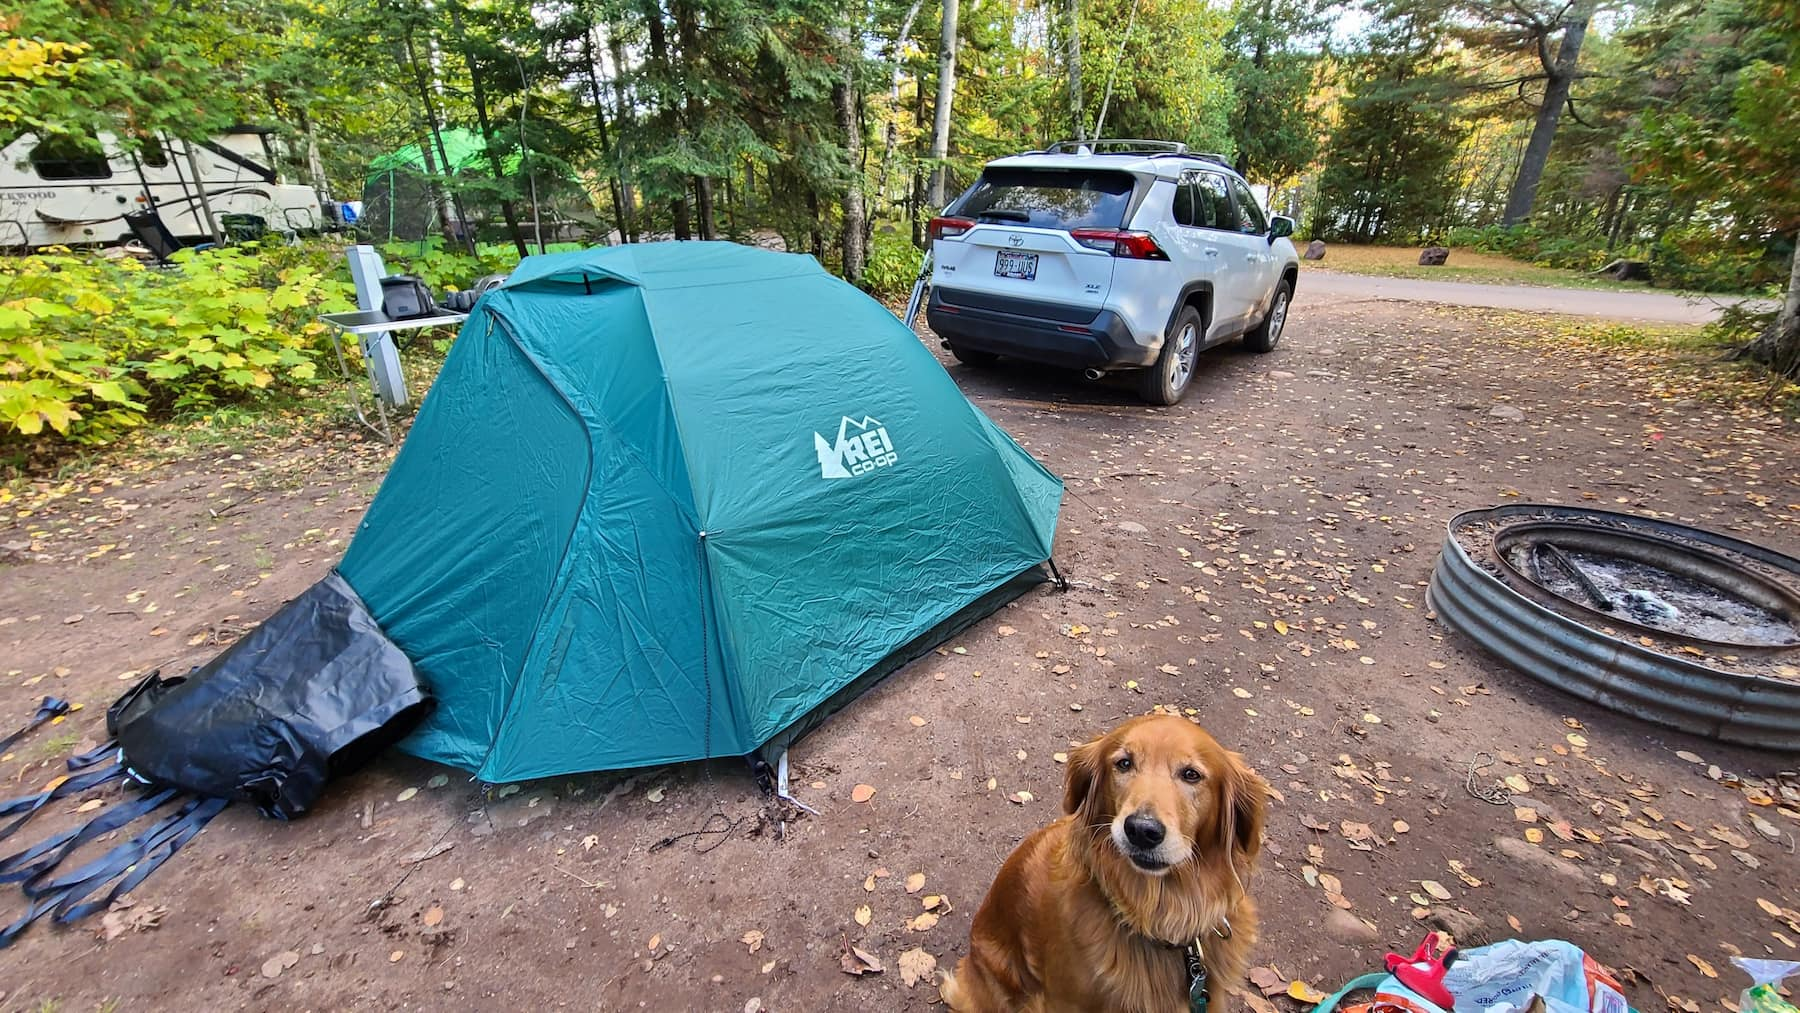 Golden retriever sitting at campsite beside tent and car , in the forest.